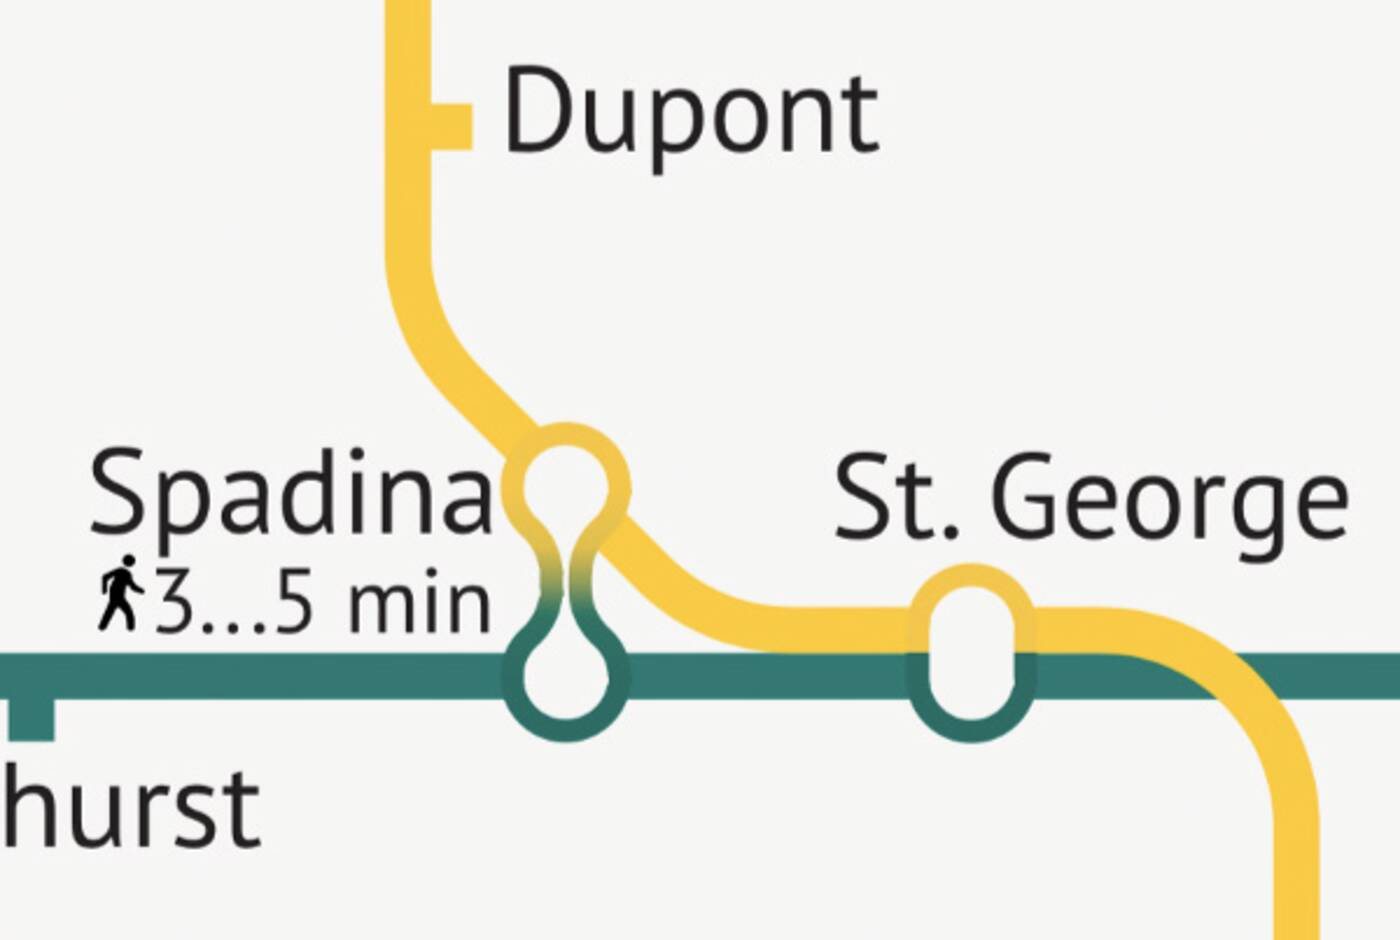 toronto subway interchange